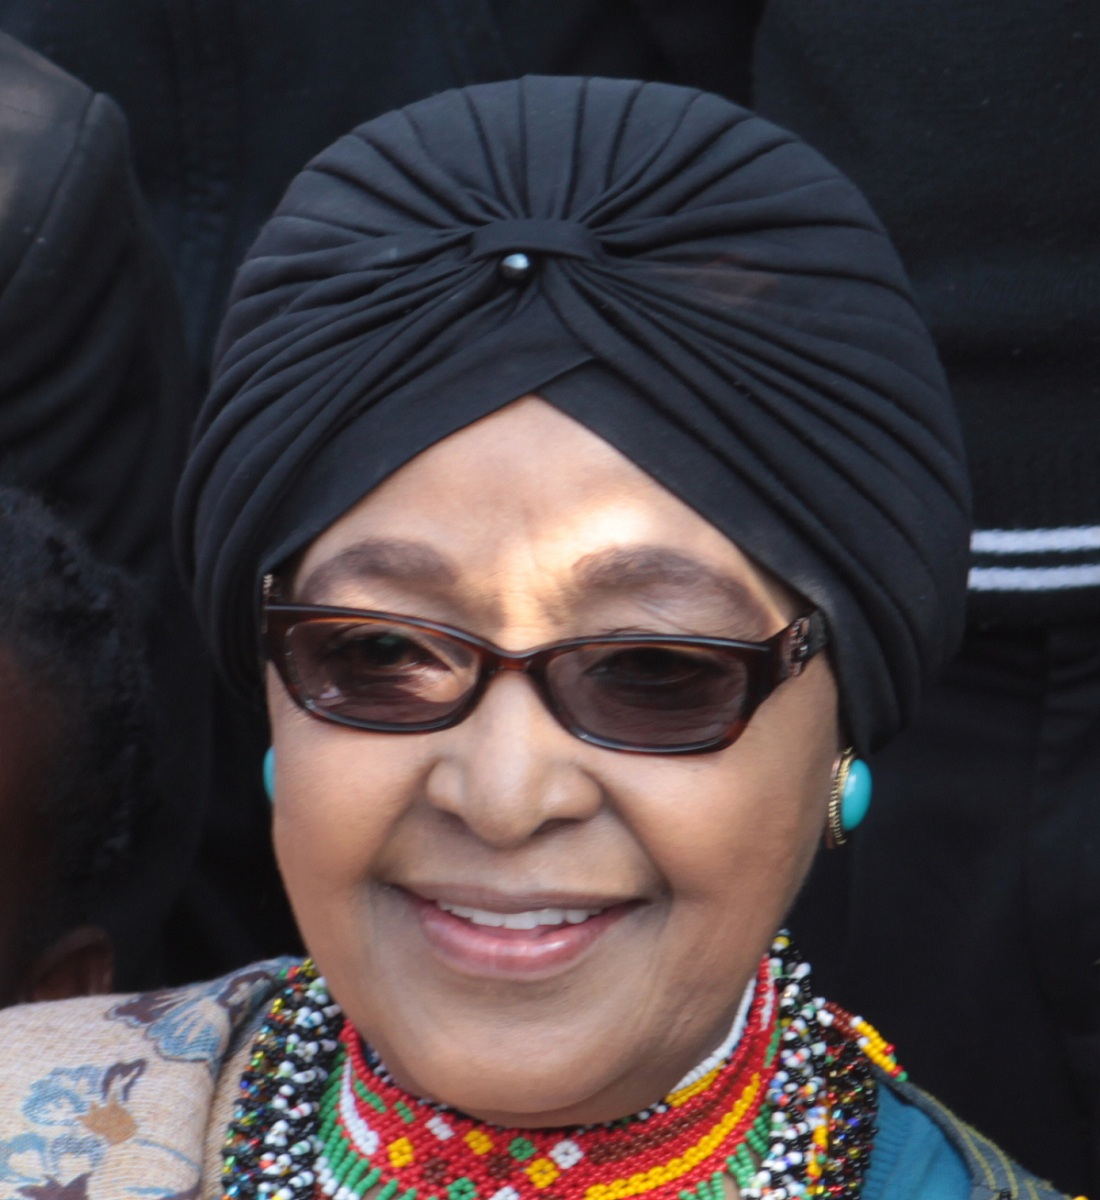 Highway Radio: In honour of NW Madikizela-Mandela